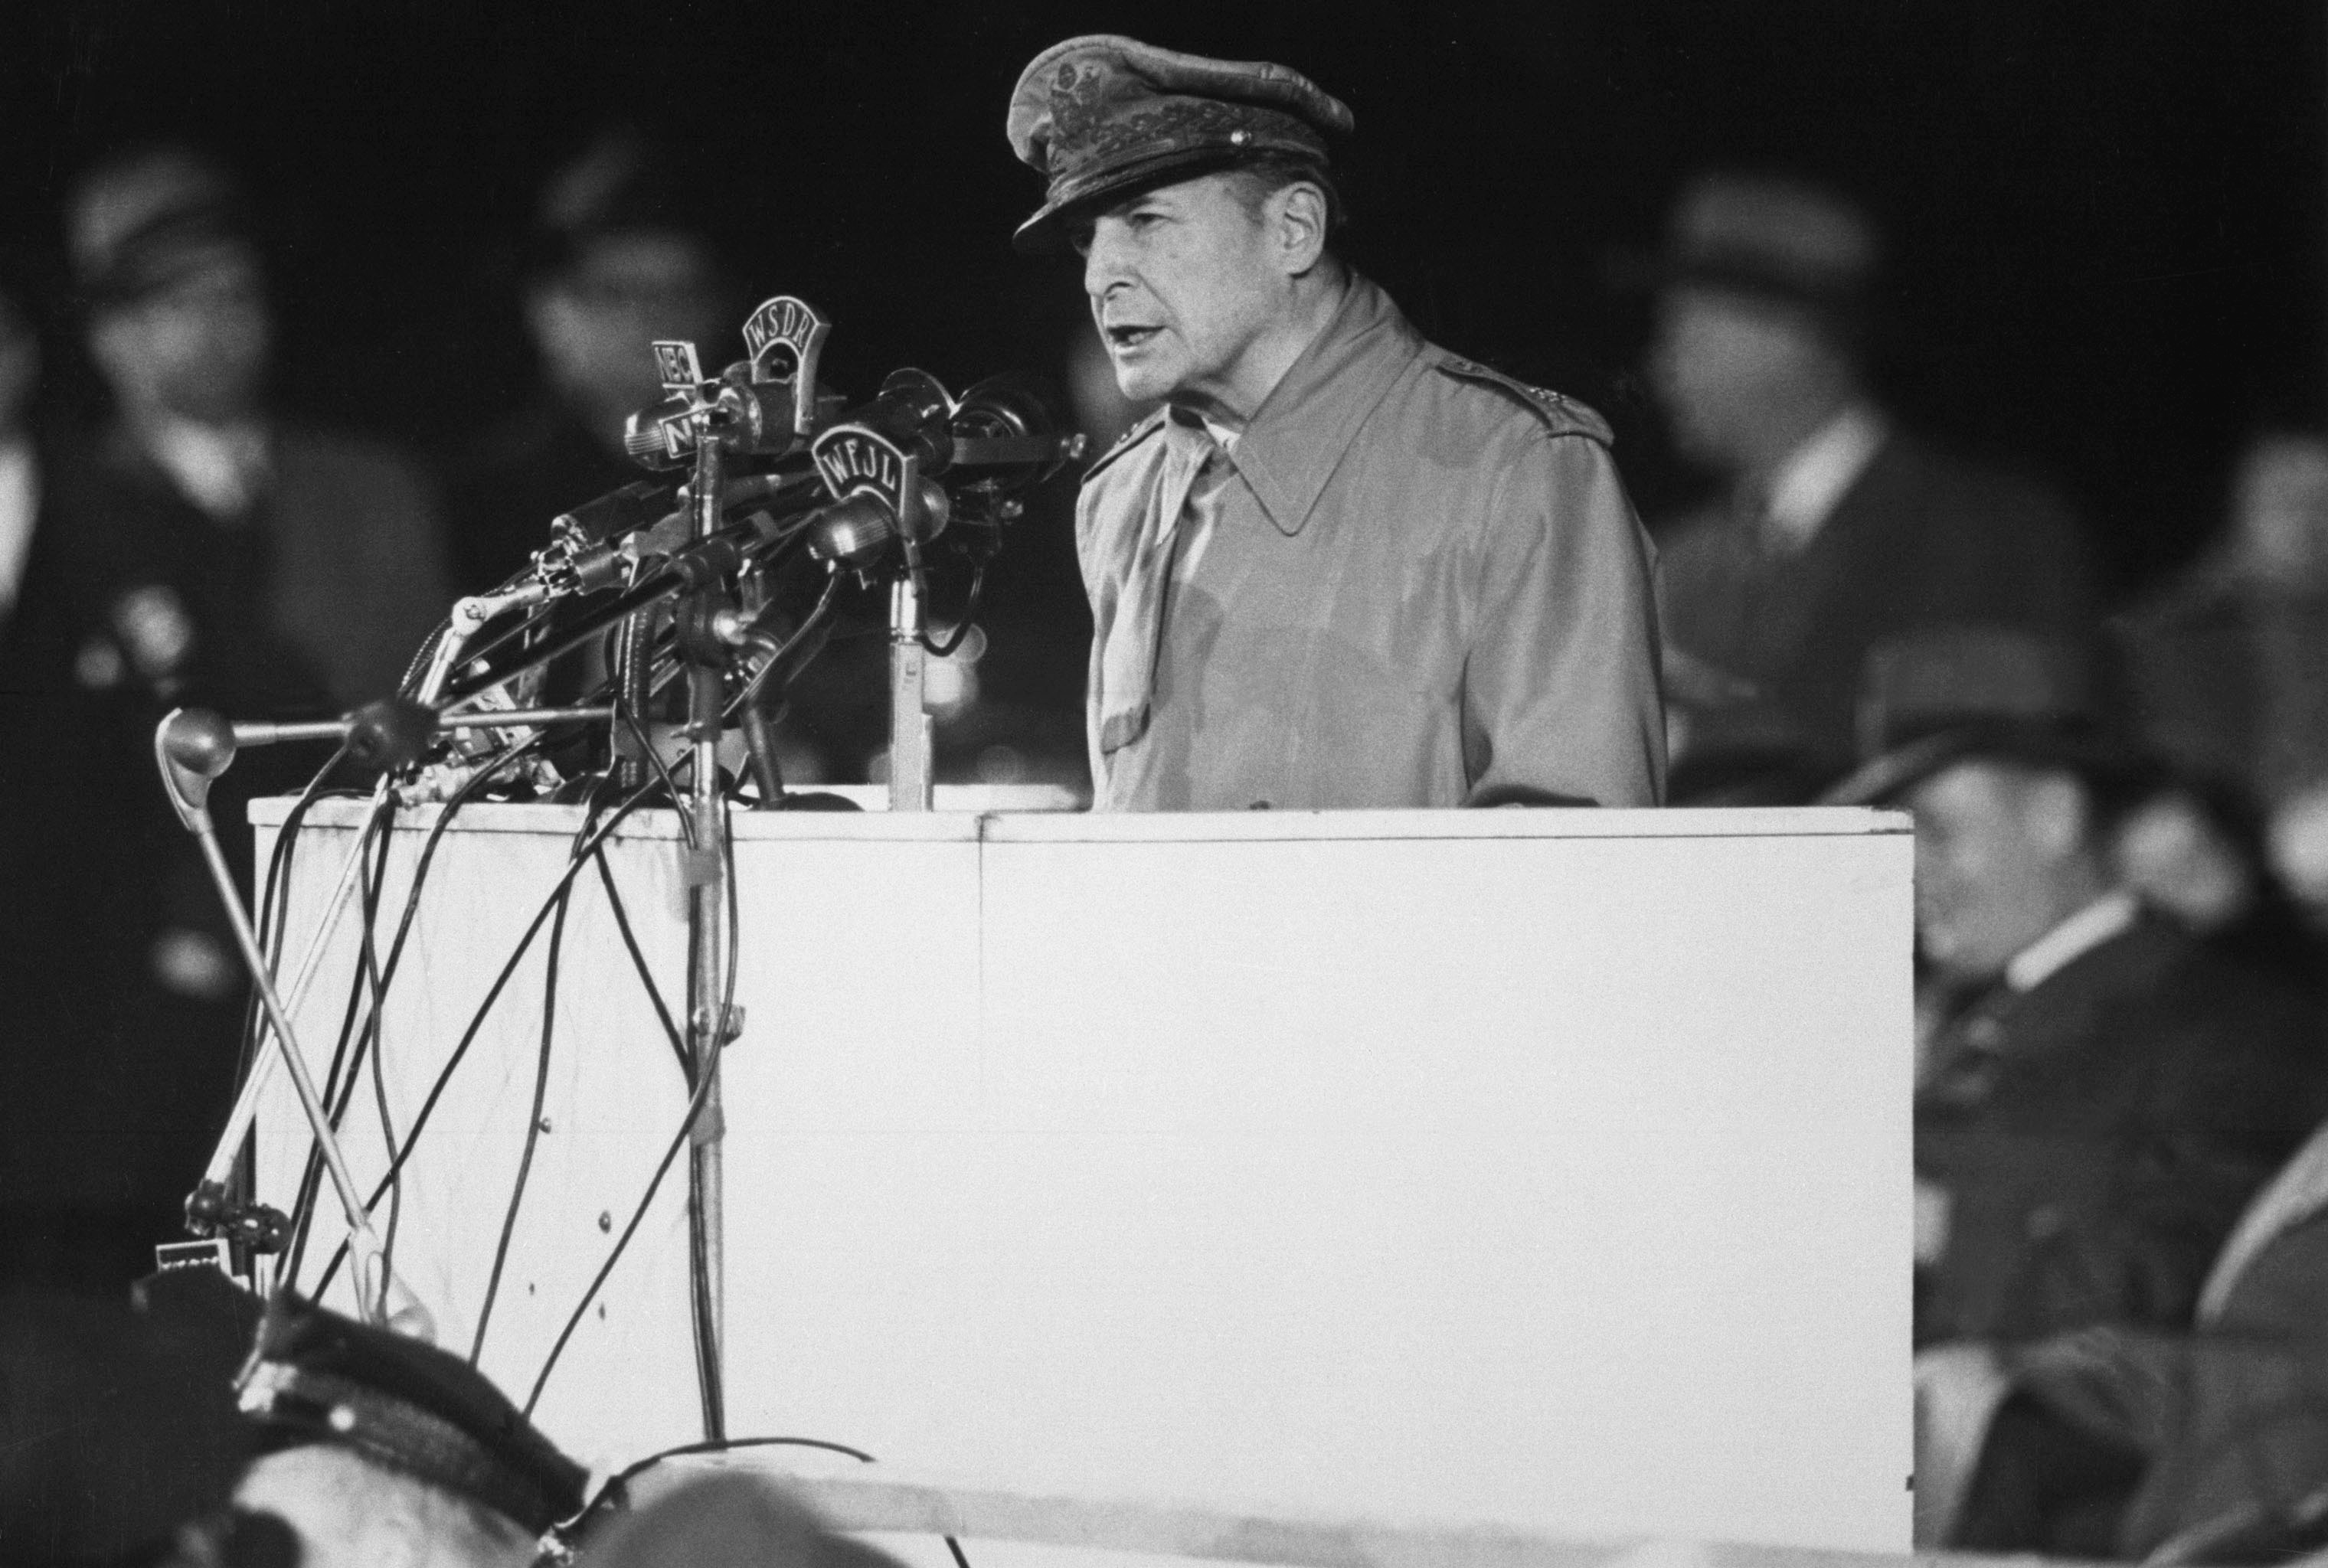 Douglas_MacArthur_speaking_at_Soldier_Field_HD-SN-99-03036.JPEG